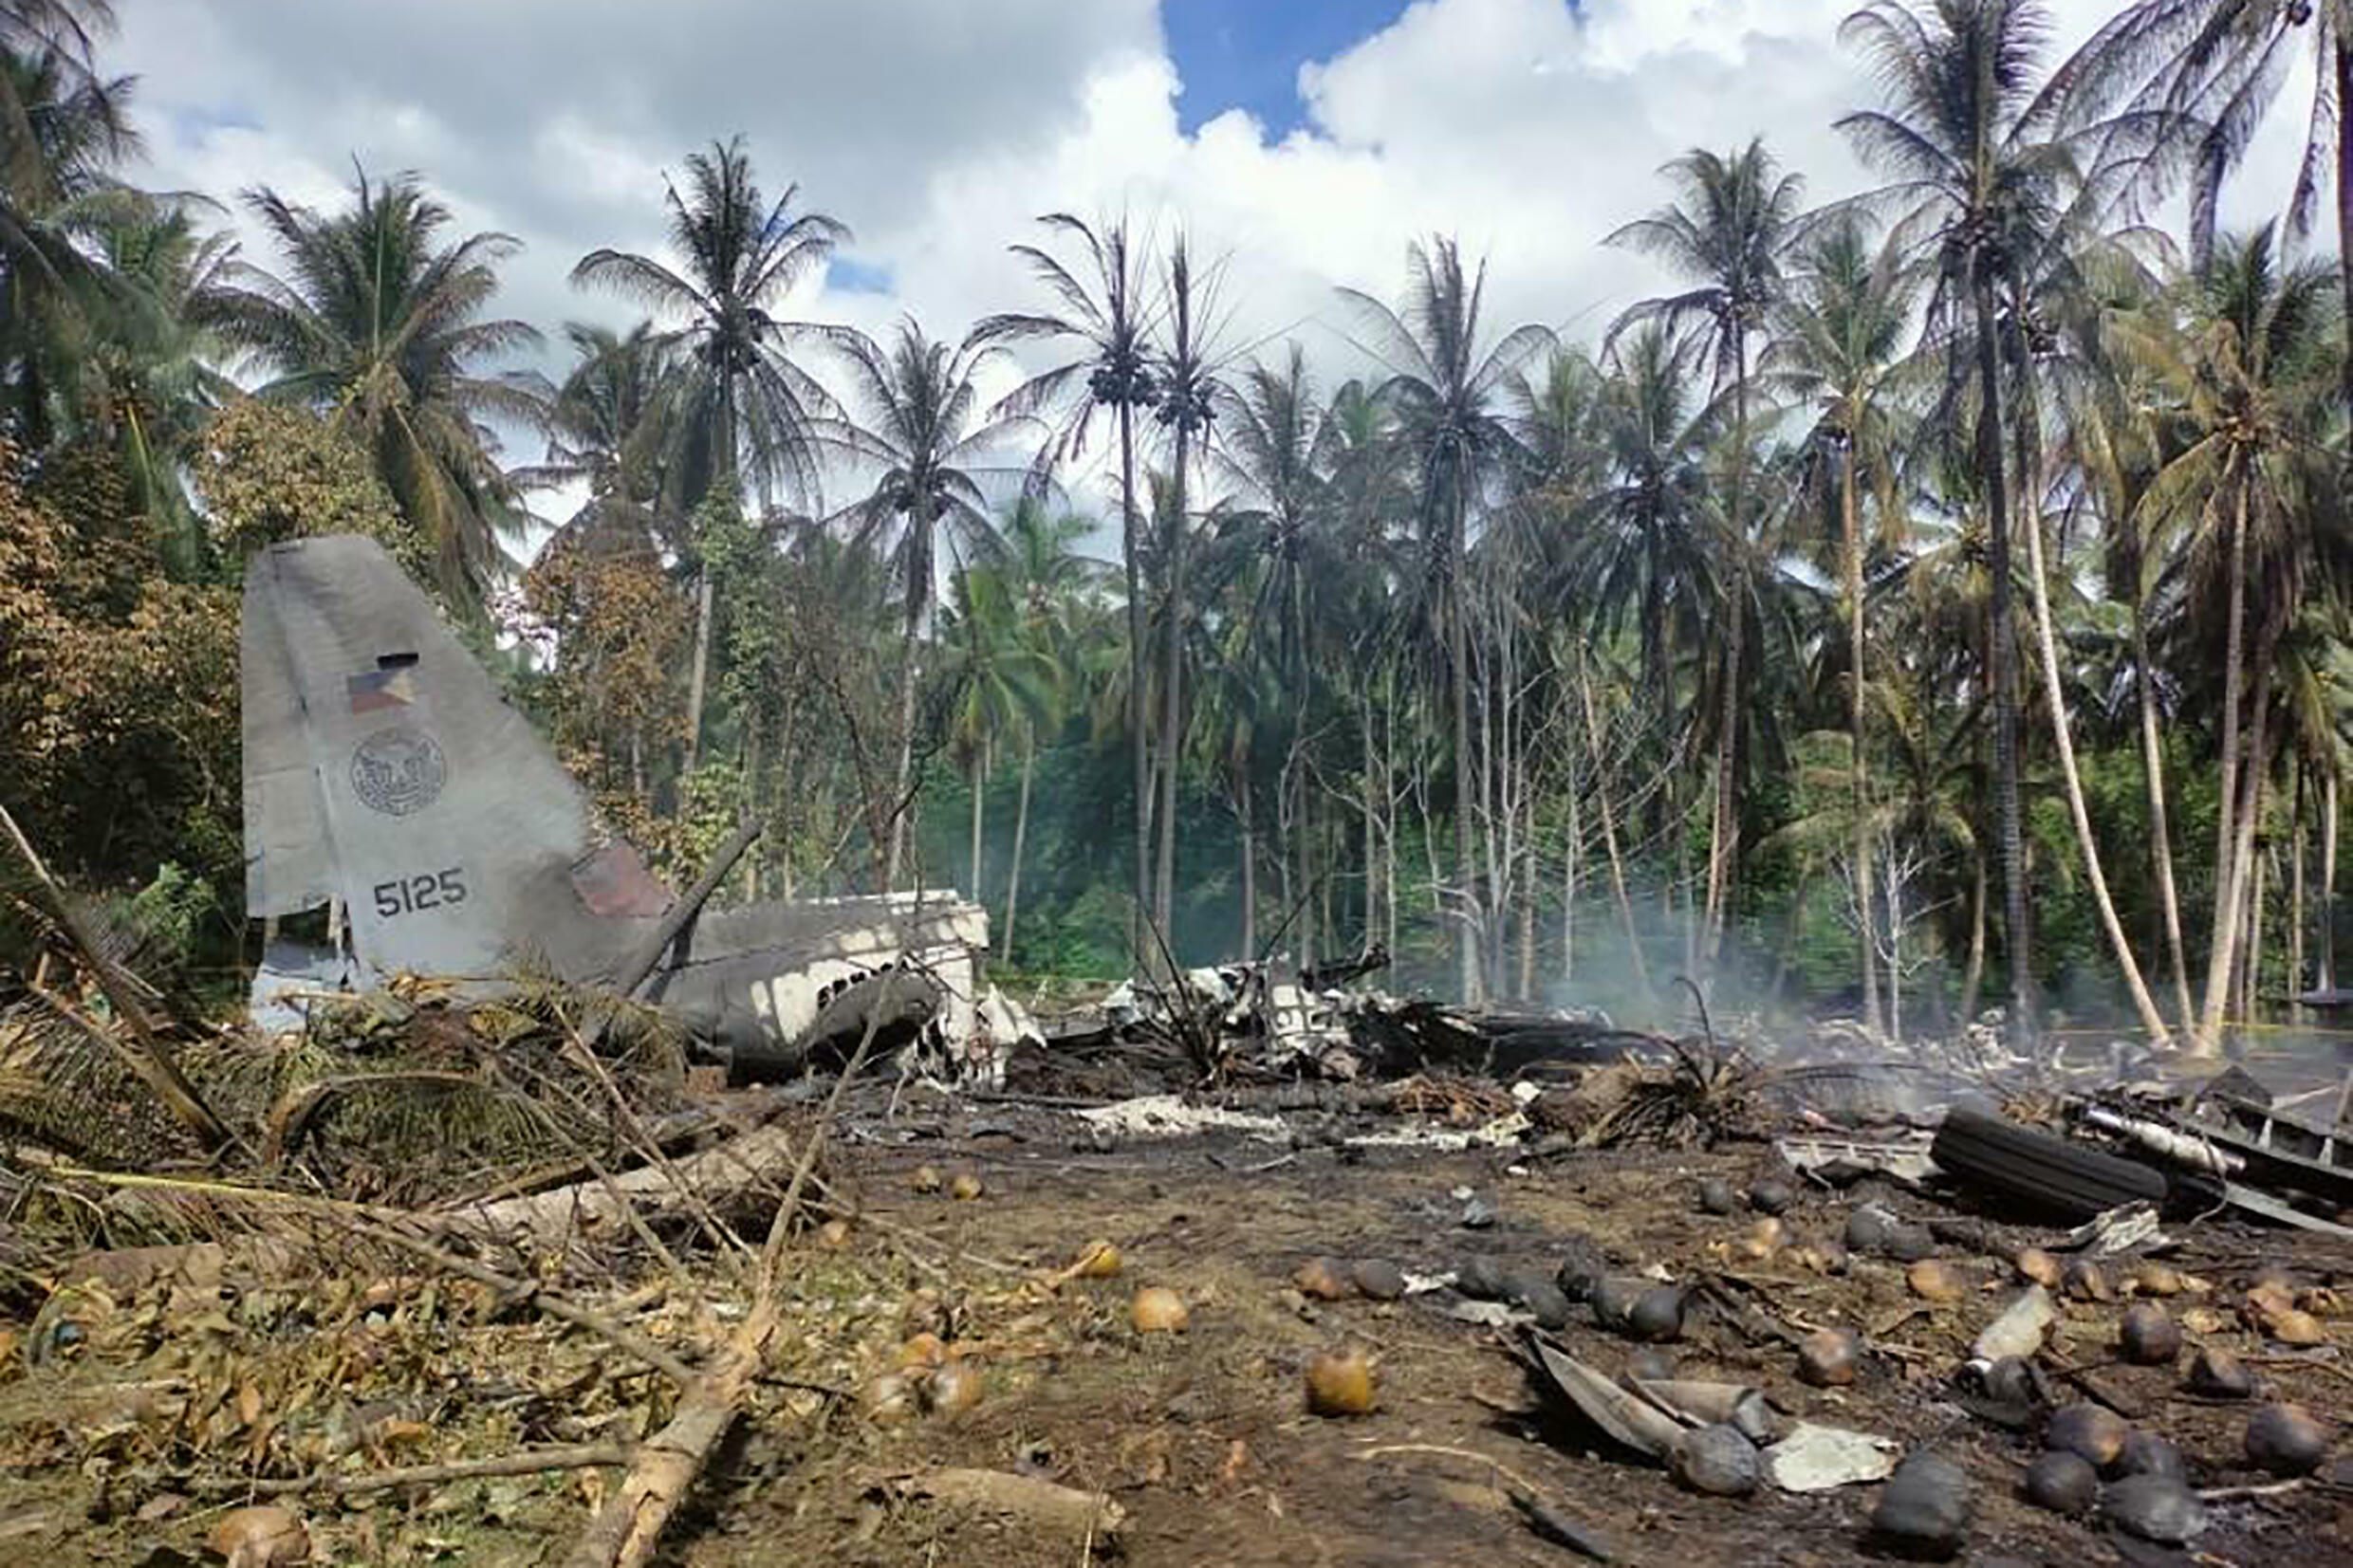 The C-130 crash in the southern Philippines is one of the deadliest military aviation accidents in the country's history